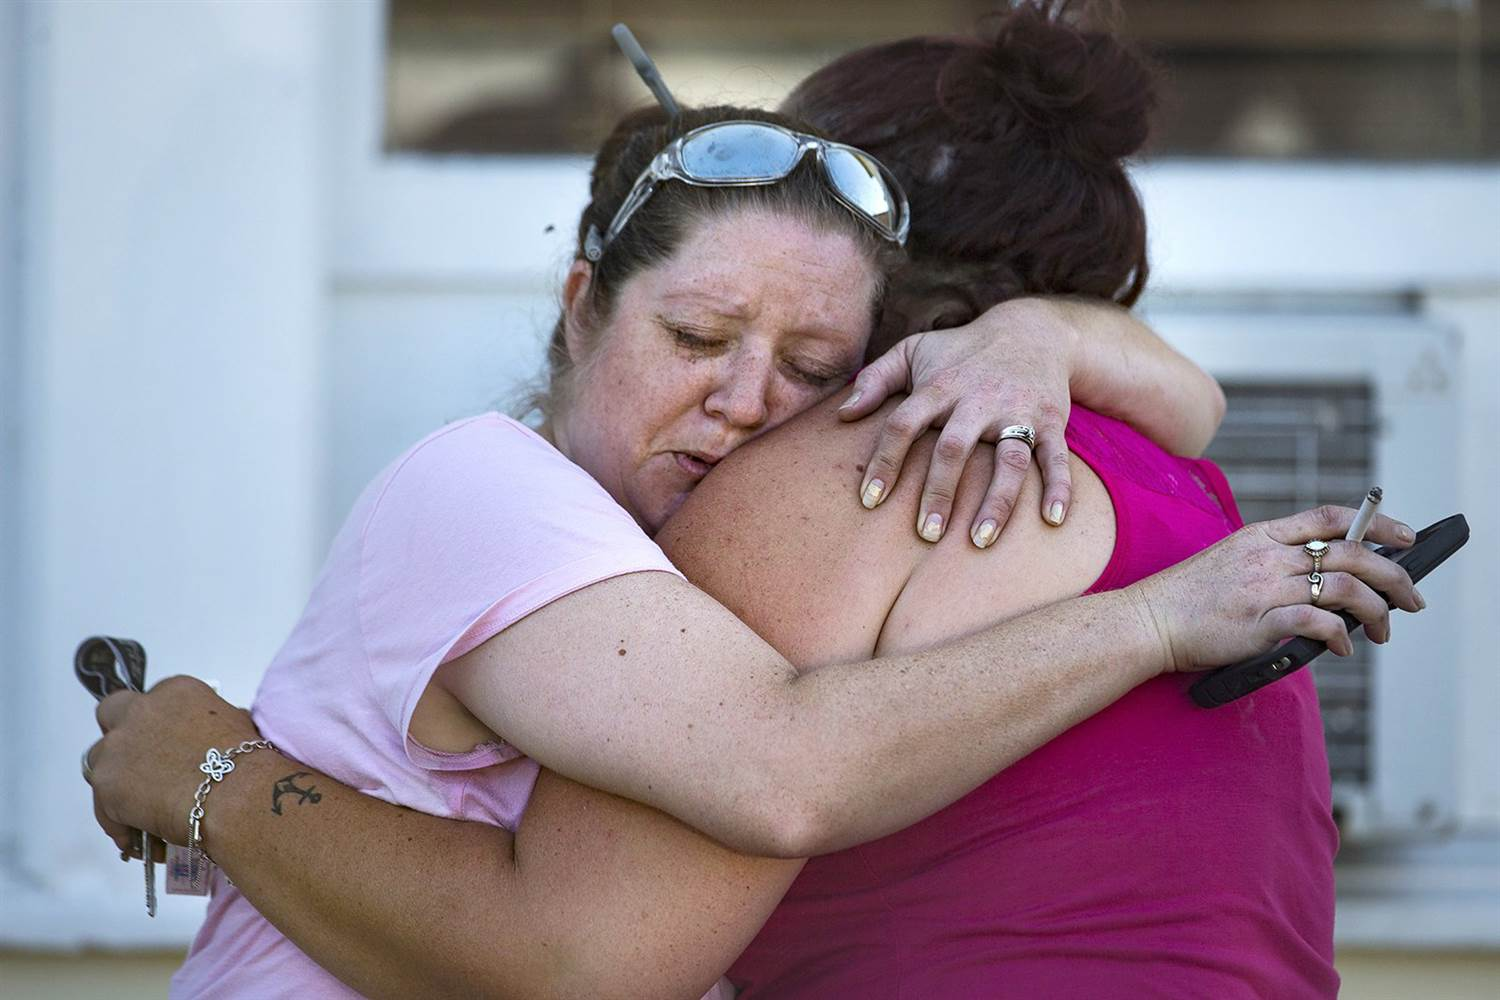 Carrie Matula embraces a woman after a fatal shooting at First Baptist Church in Sutherland Springs, Texas.